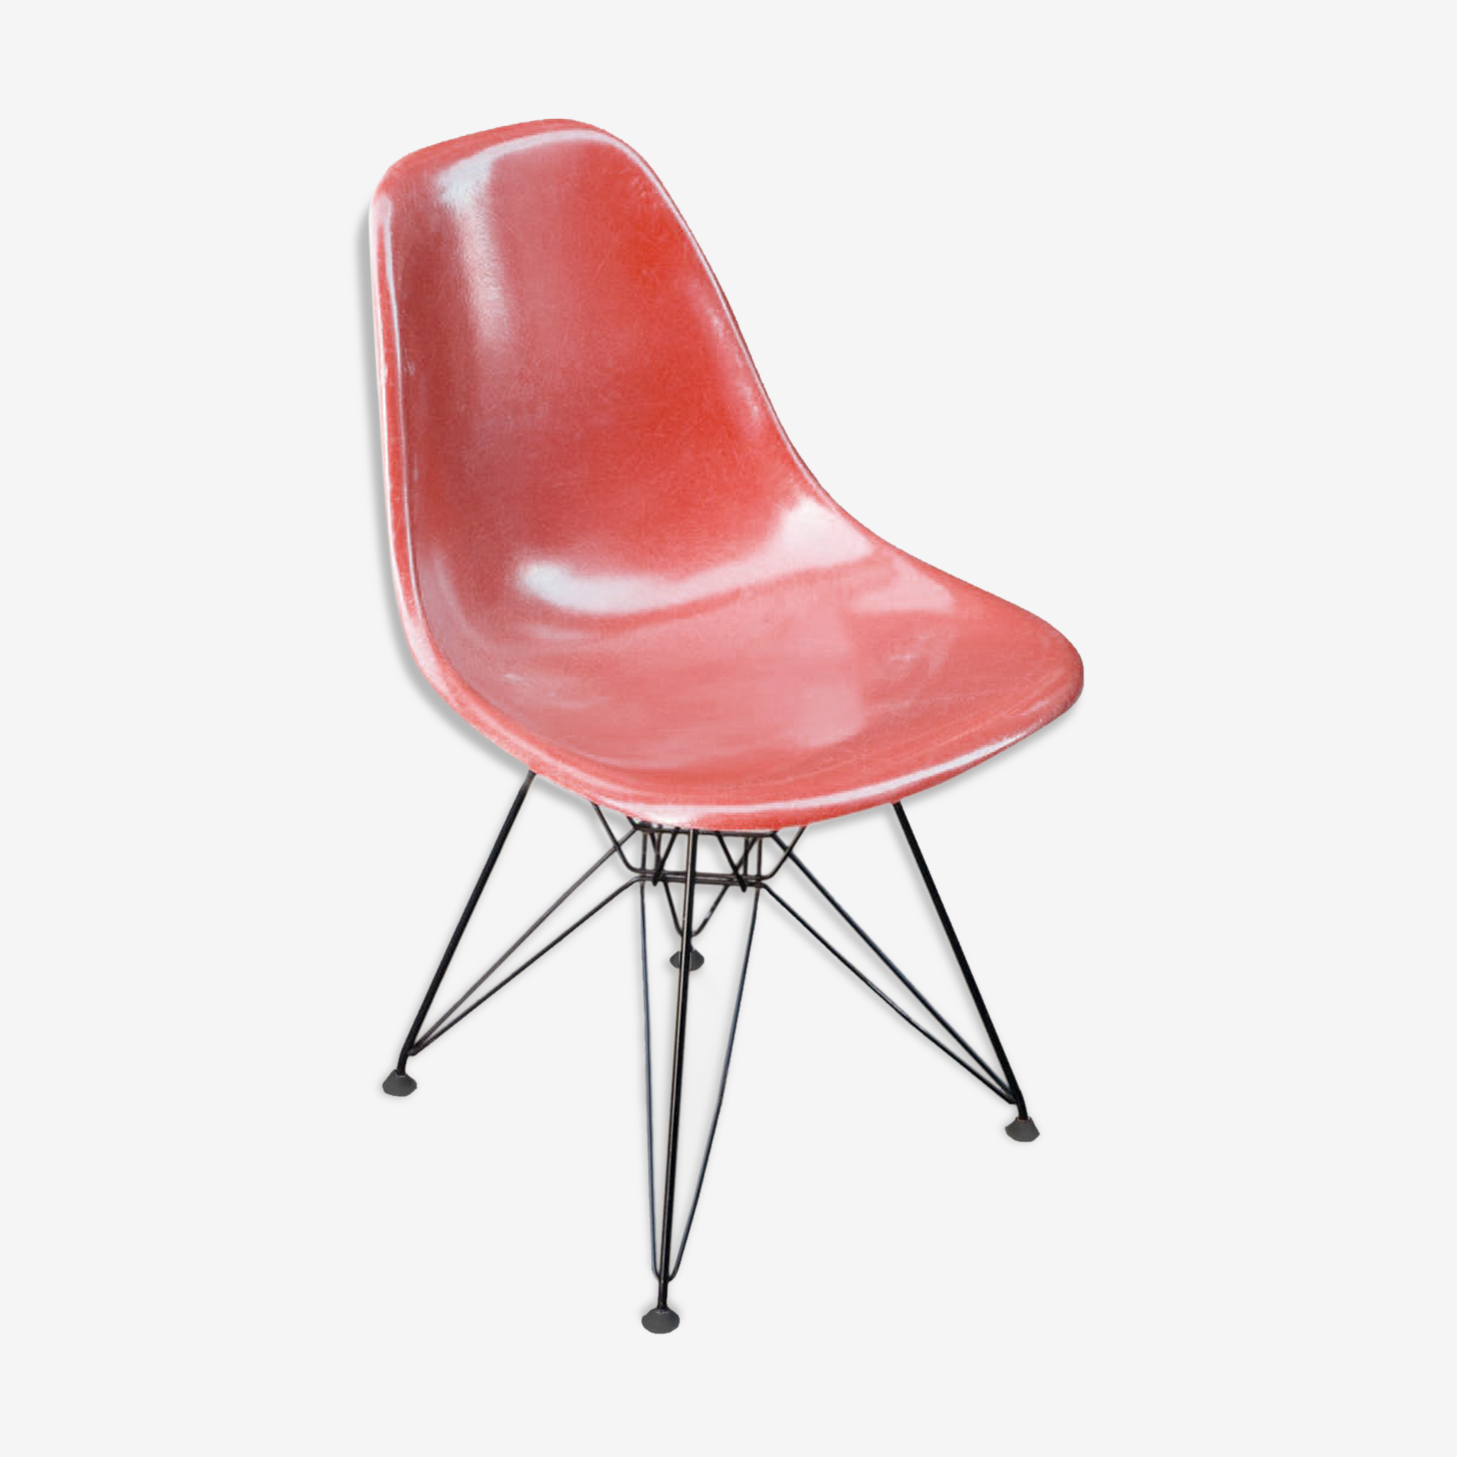 Chair design Charles and Ray Eames Herman Miller foot Eiffel edition DSR